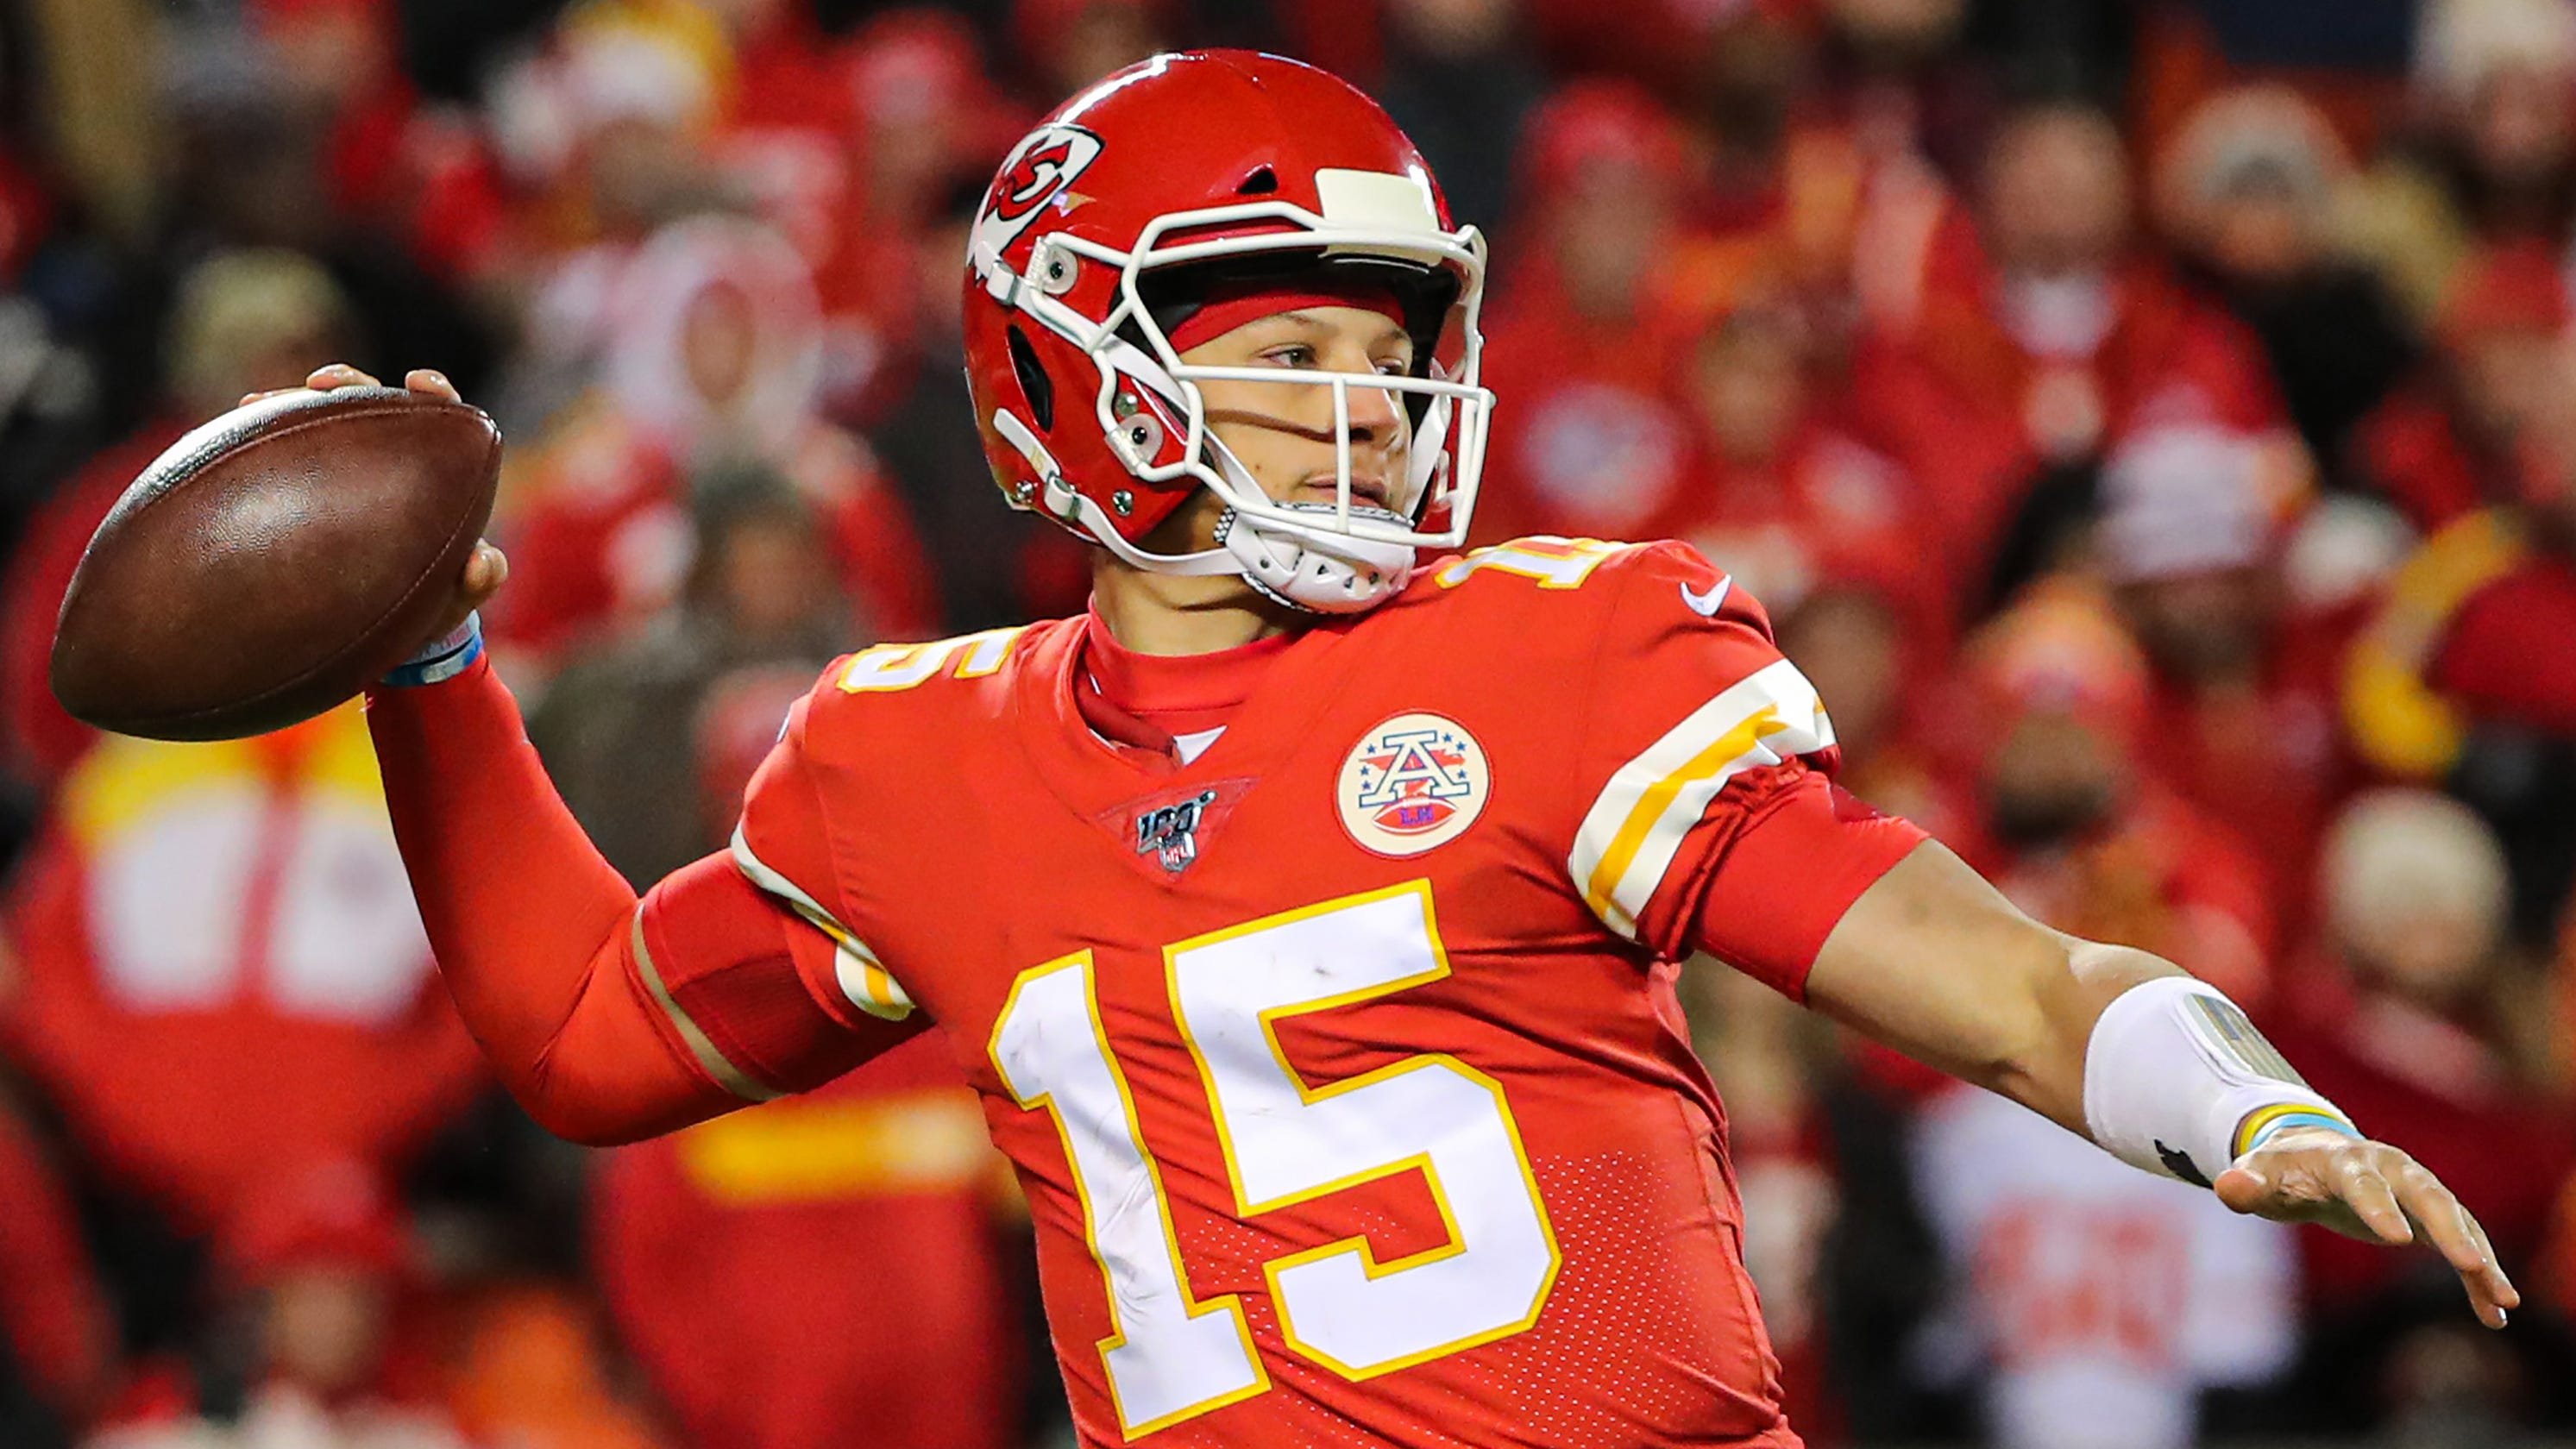 On Kansas City Chiefs' QB Patrick Mahomes' 25th birthday, here are 25 facts, stats and records